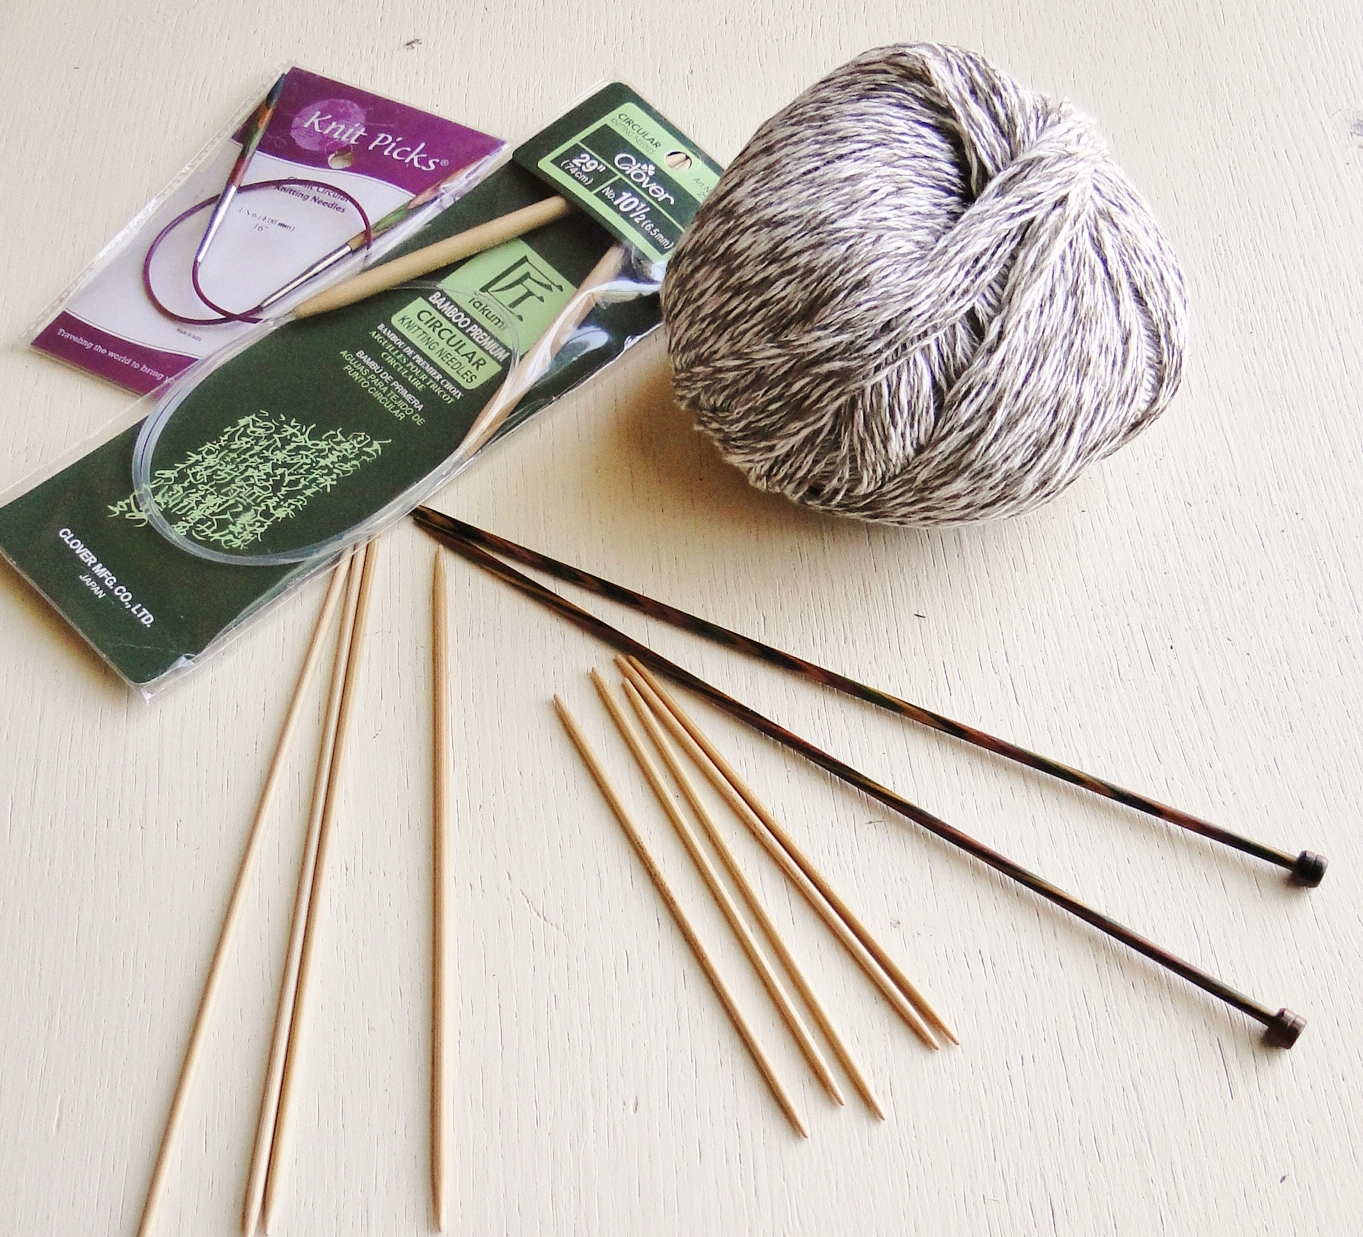 Clover Bamboo Flex knitting needles